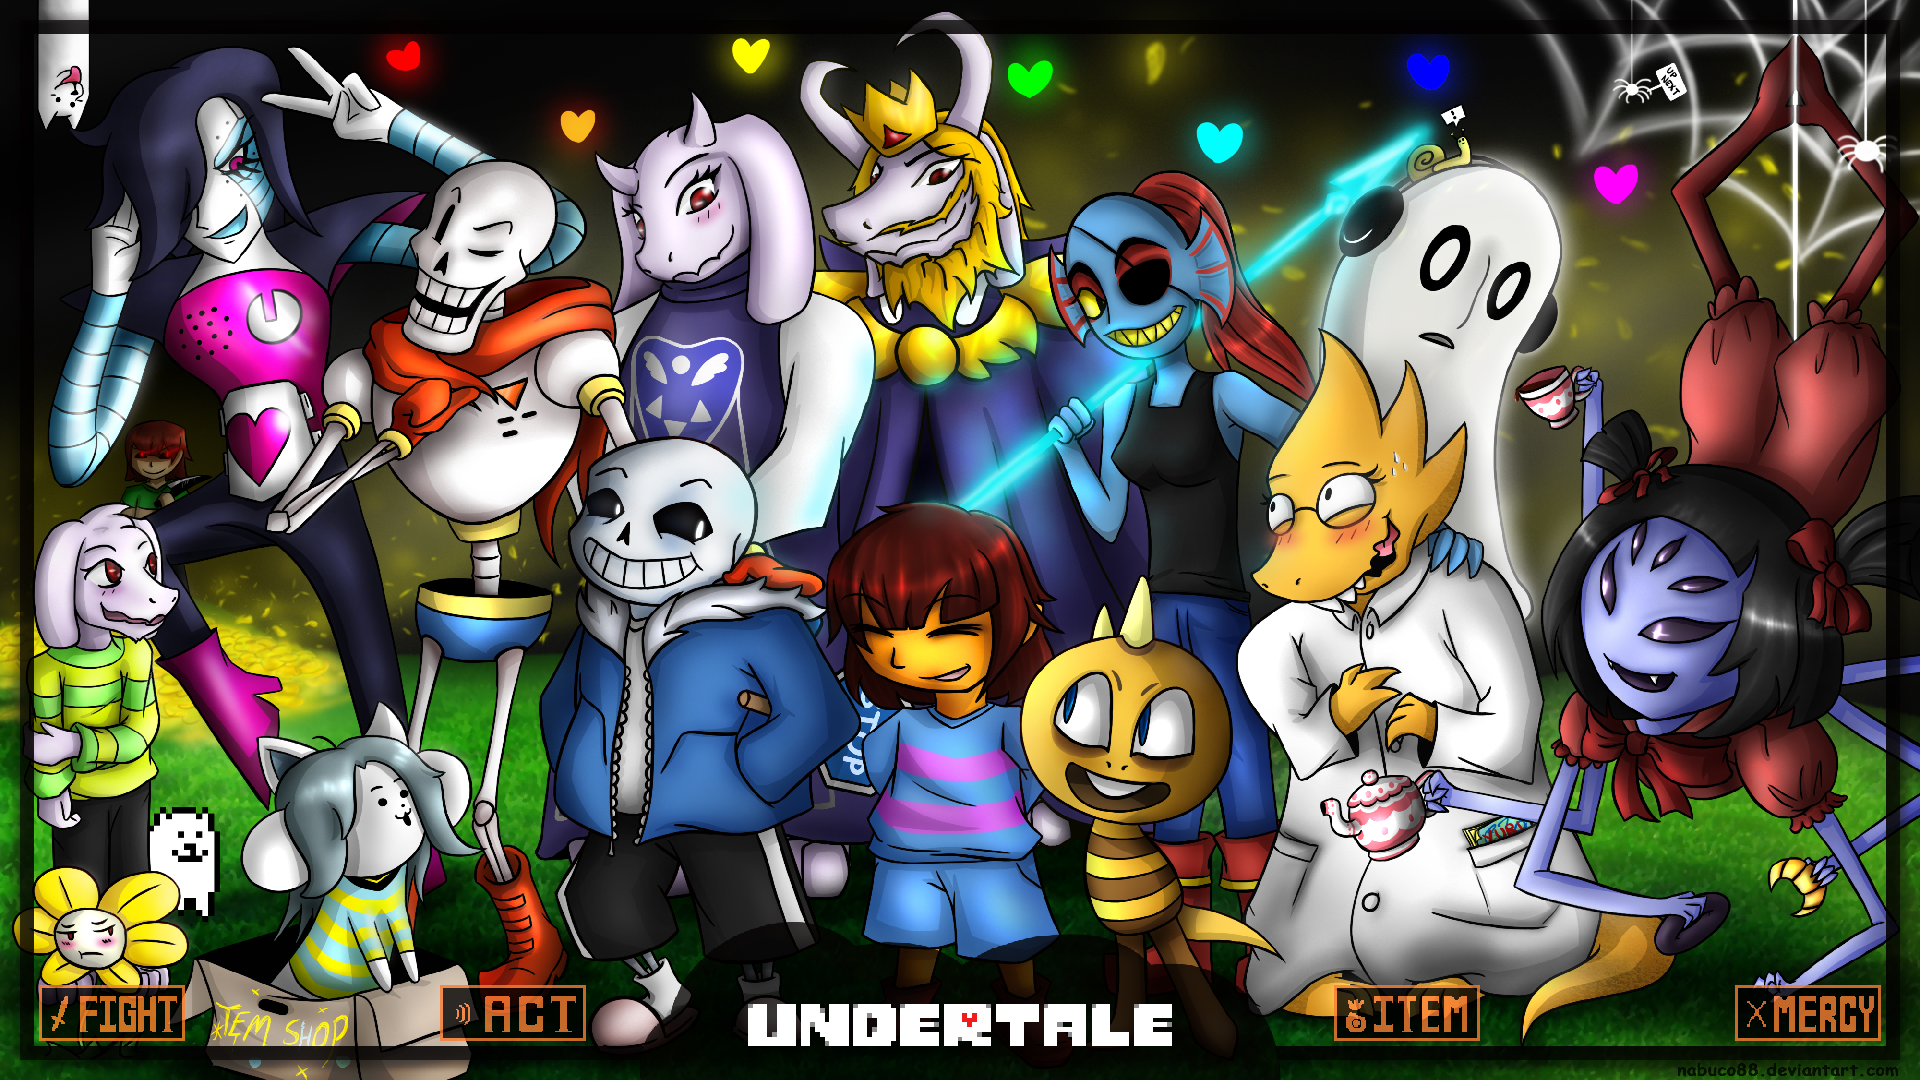 Hd wallpaper pc tumblr - Undertale Wallpapers For Pc Wallpapersafari